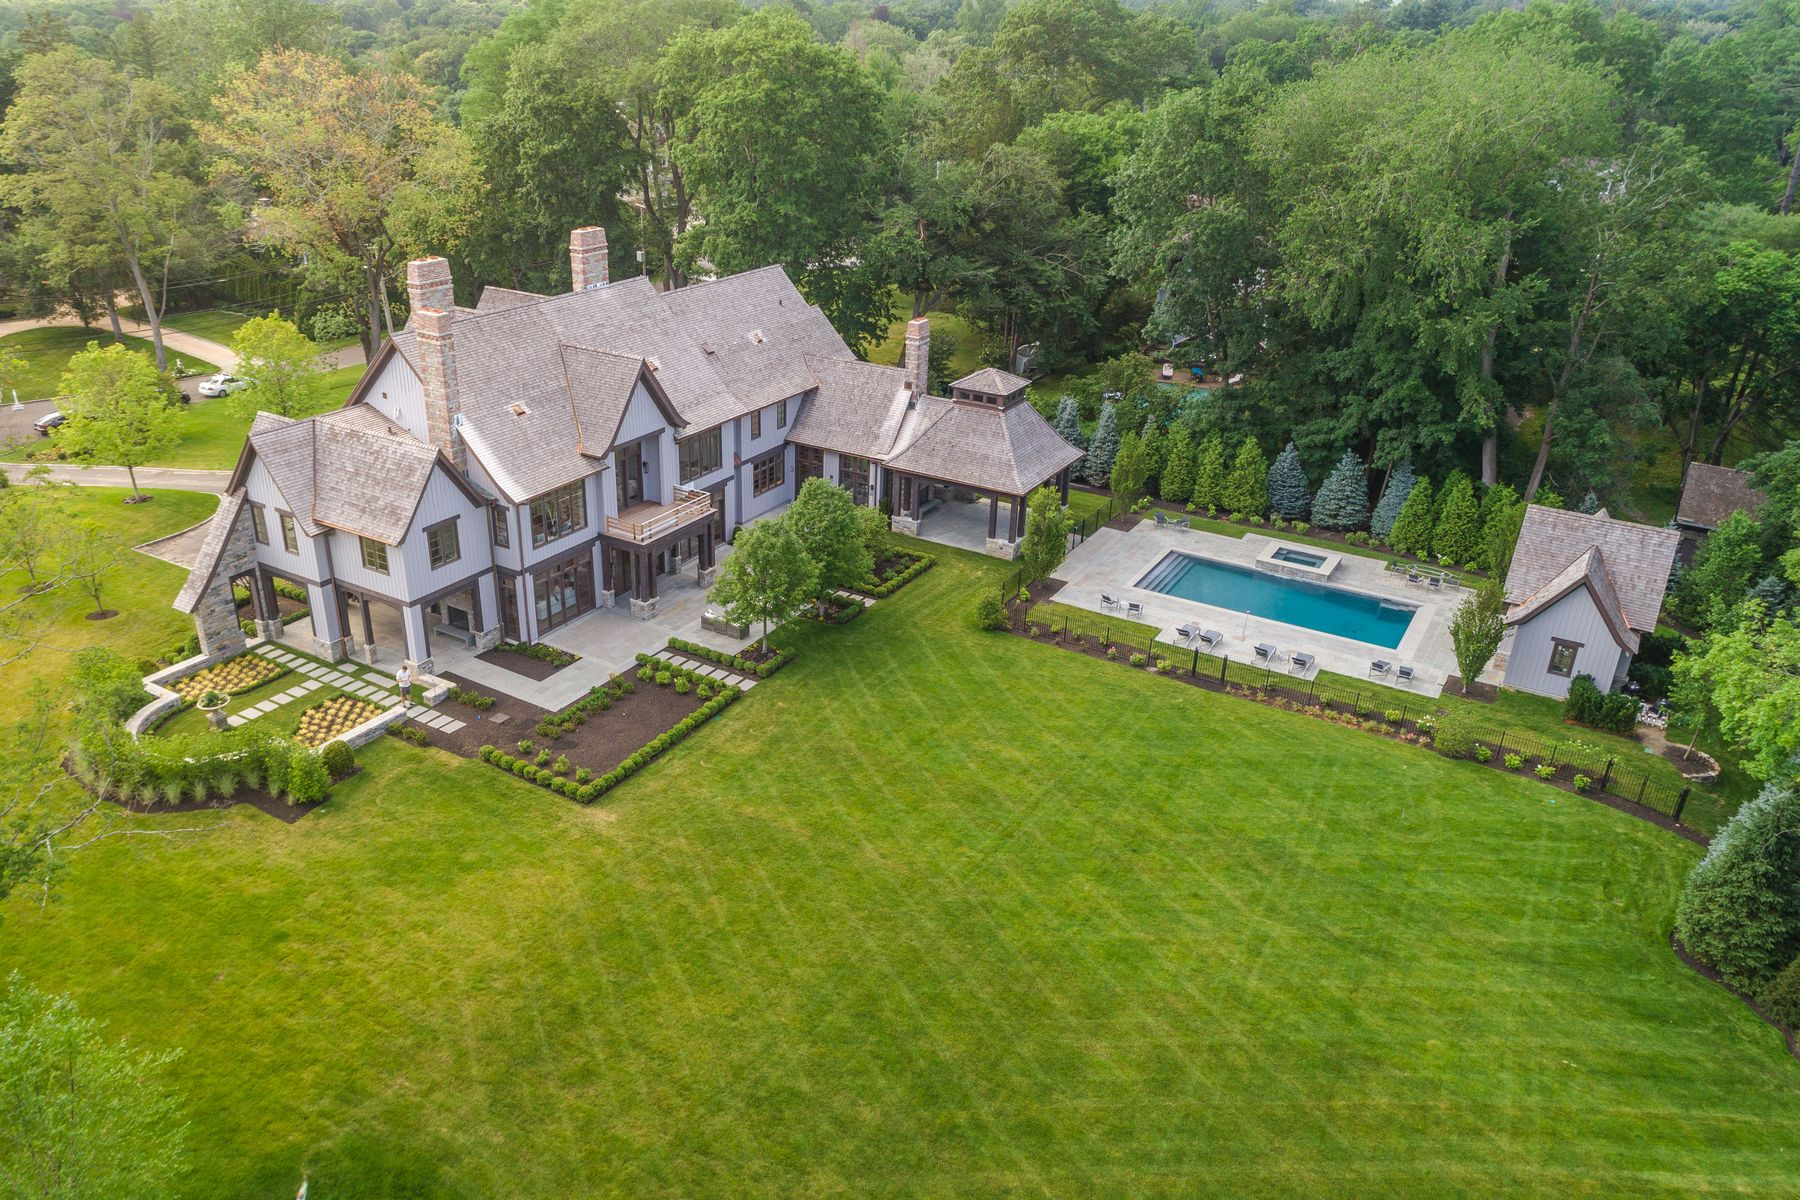 Single Family Homes for Active at In-Town New Construction 19 Meadow Drive Greenwich, Connecticut 06830 United States